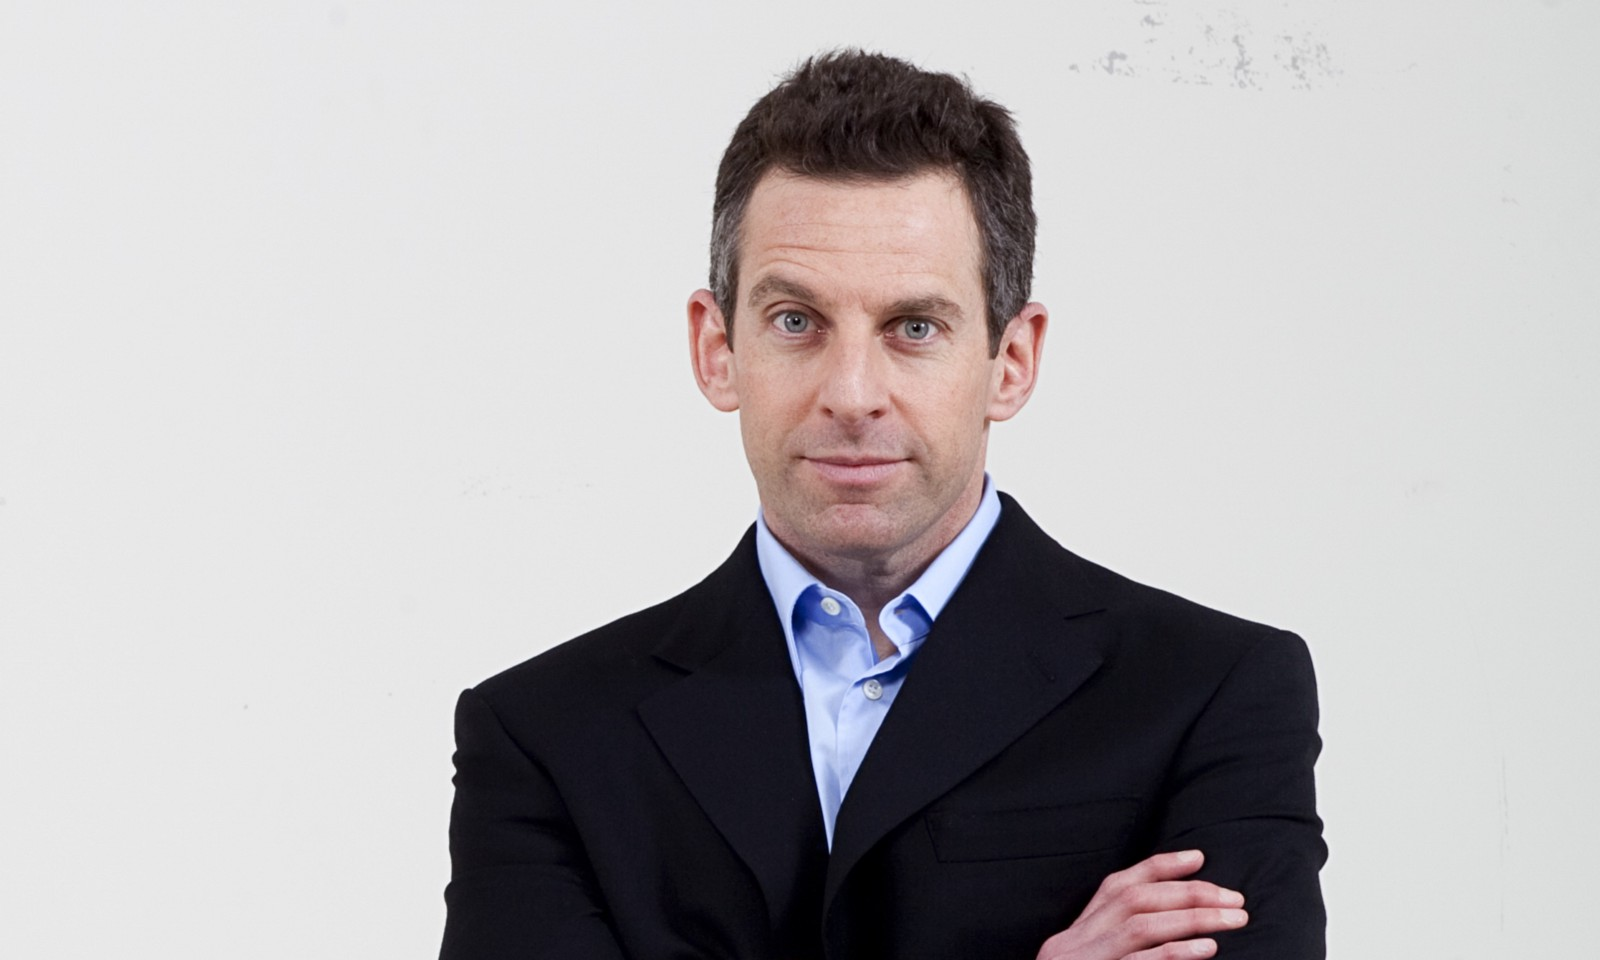 Sam harris neuroscientist